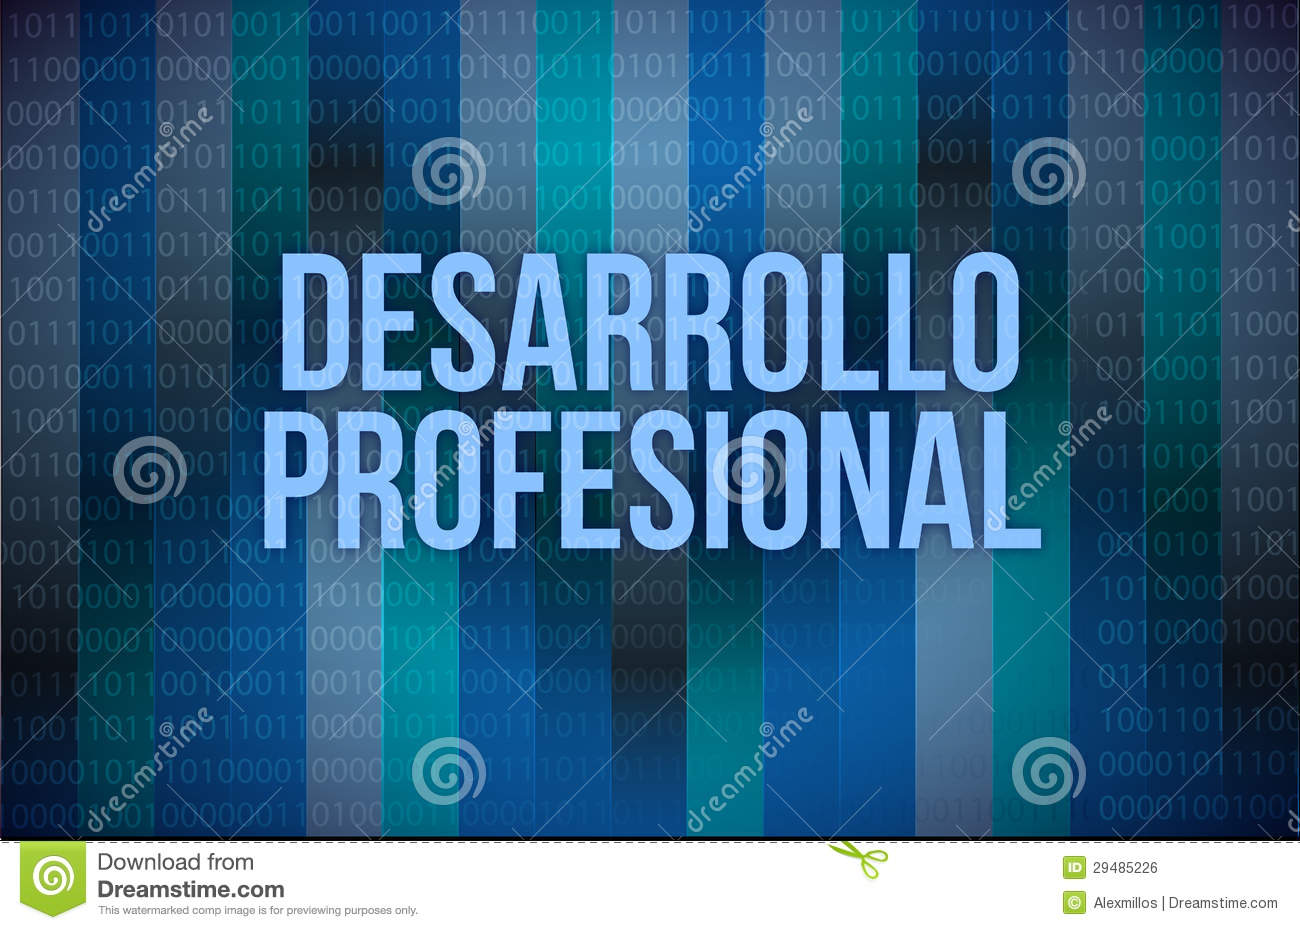 continuing professional development is a way By contrast, continuing professional development cpd, which is essentially a way of enabling professionals to enhance and maintain their knowledge and skills, brings a multitude if benefits to staff, including developing their skills, improving personal performance at work, creating work satisfaction.